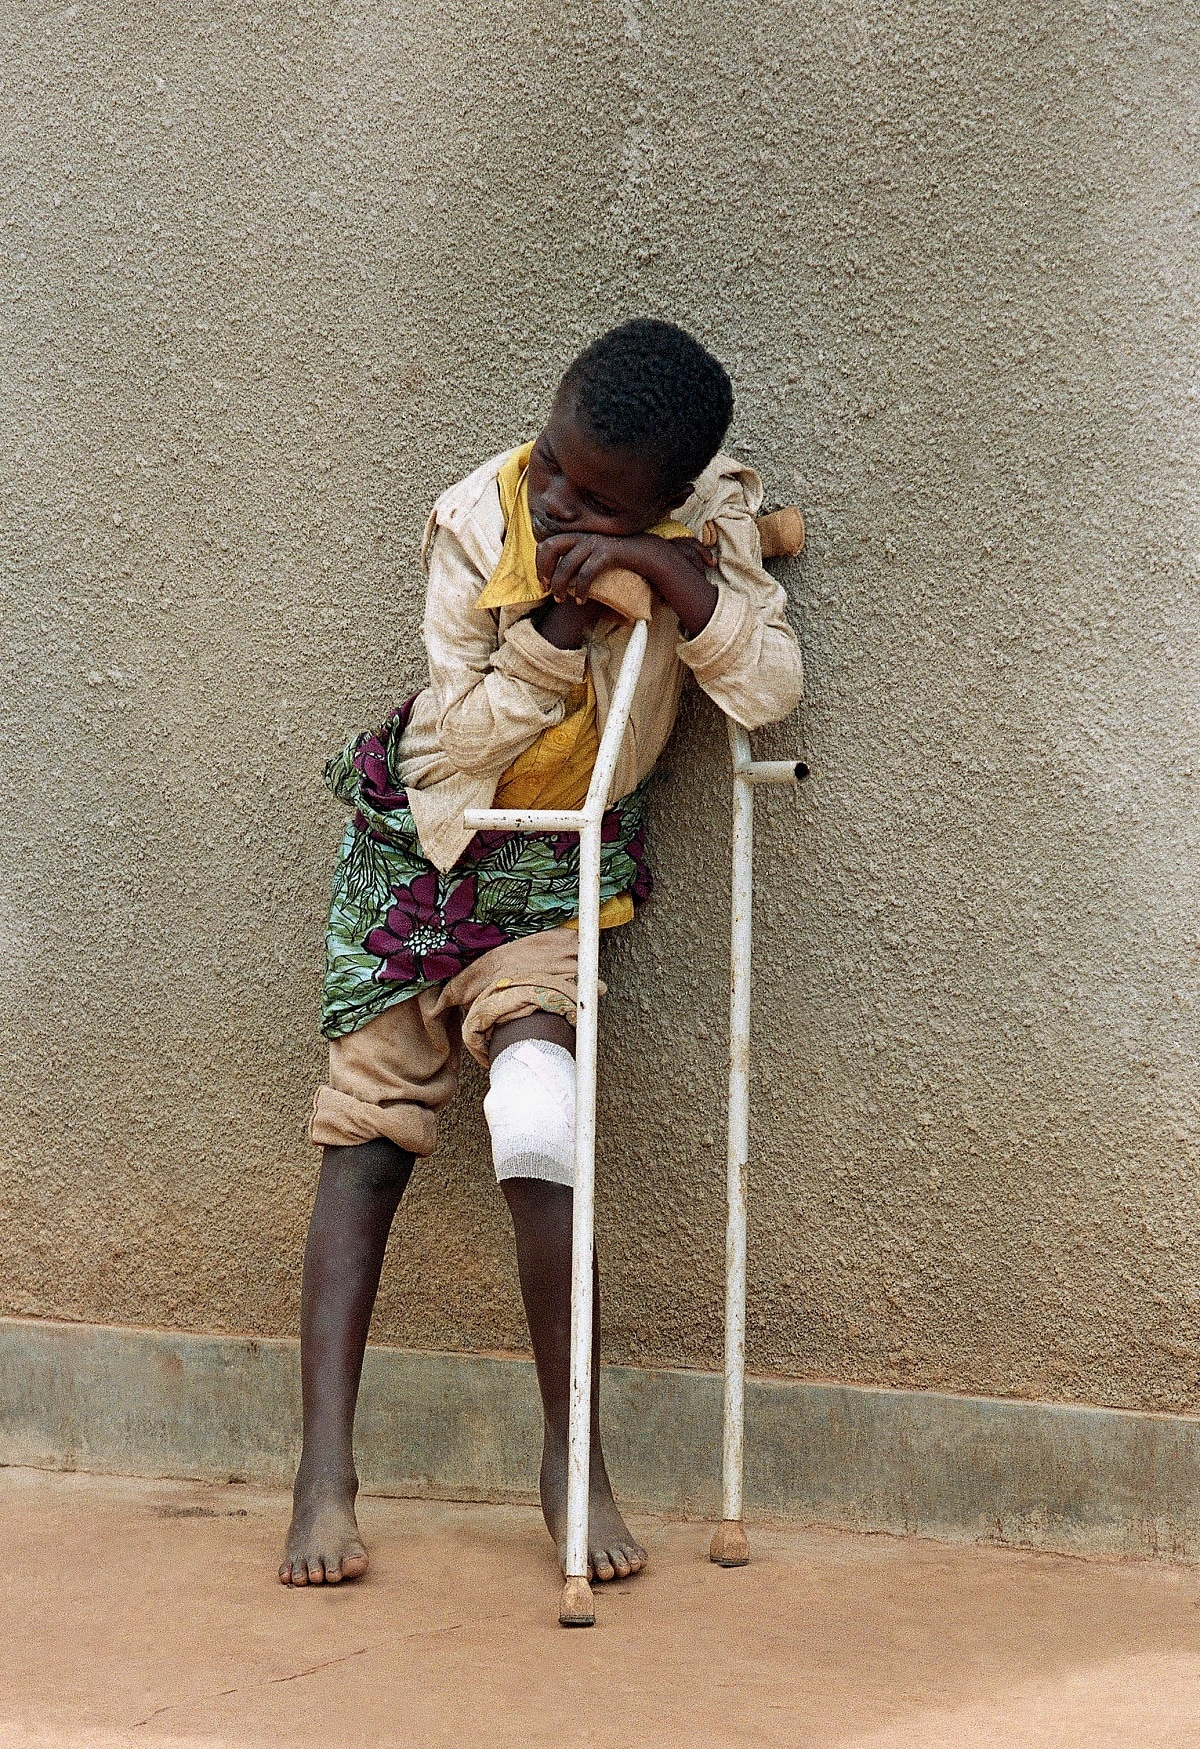 A boy who survived a massacre in the village of Karubamba rests on his crutches at a hospital. (AP Photo/Jean-Marc Bouju, File)